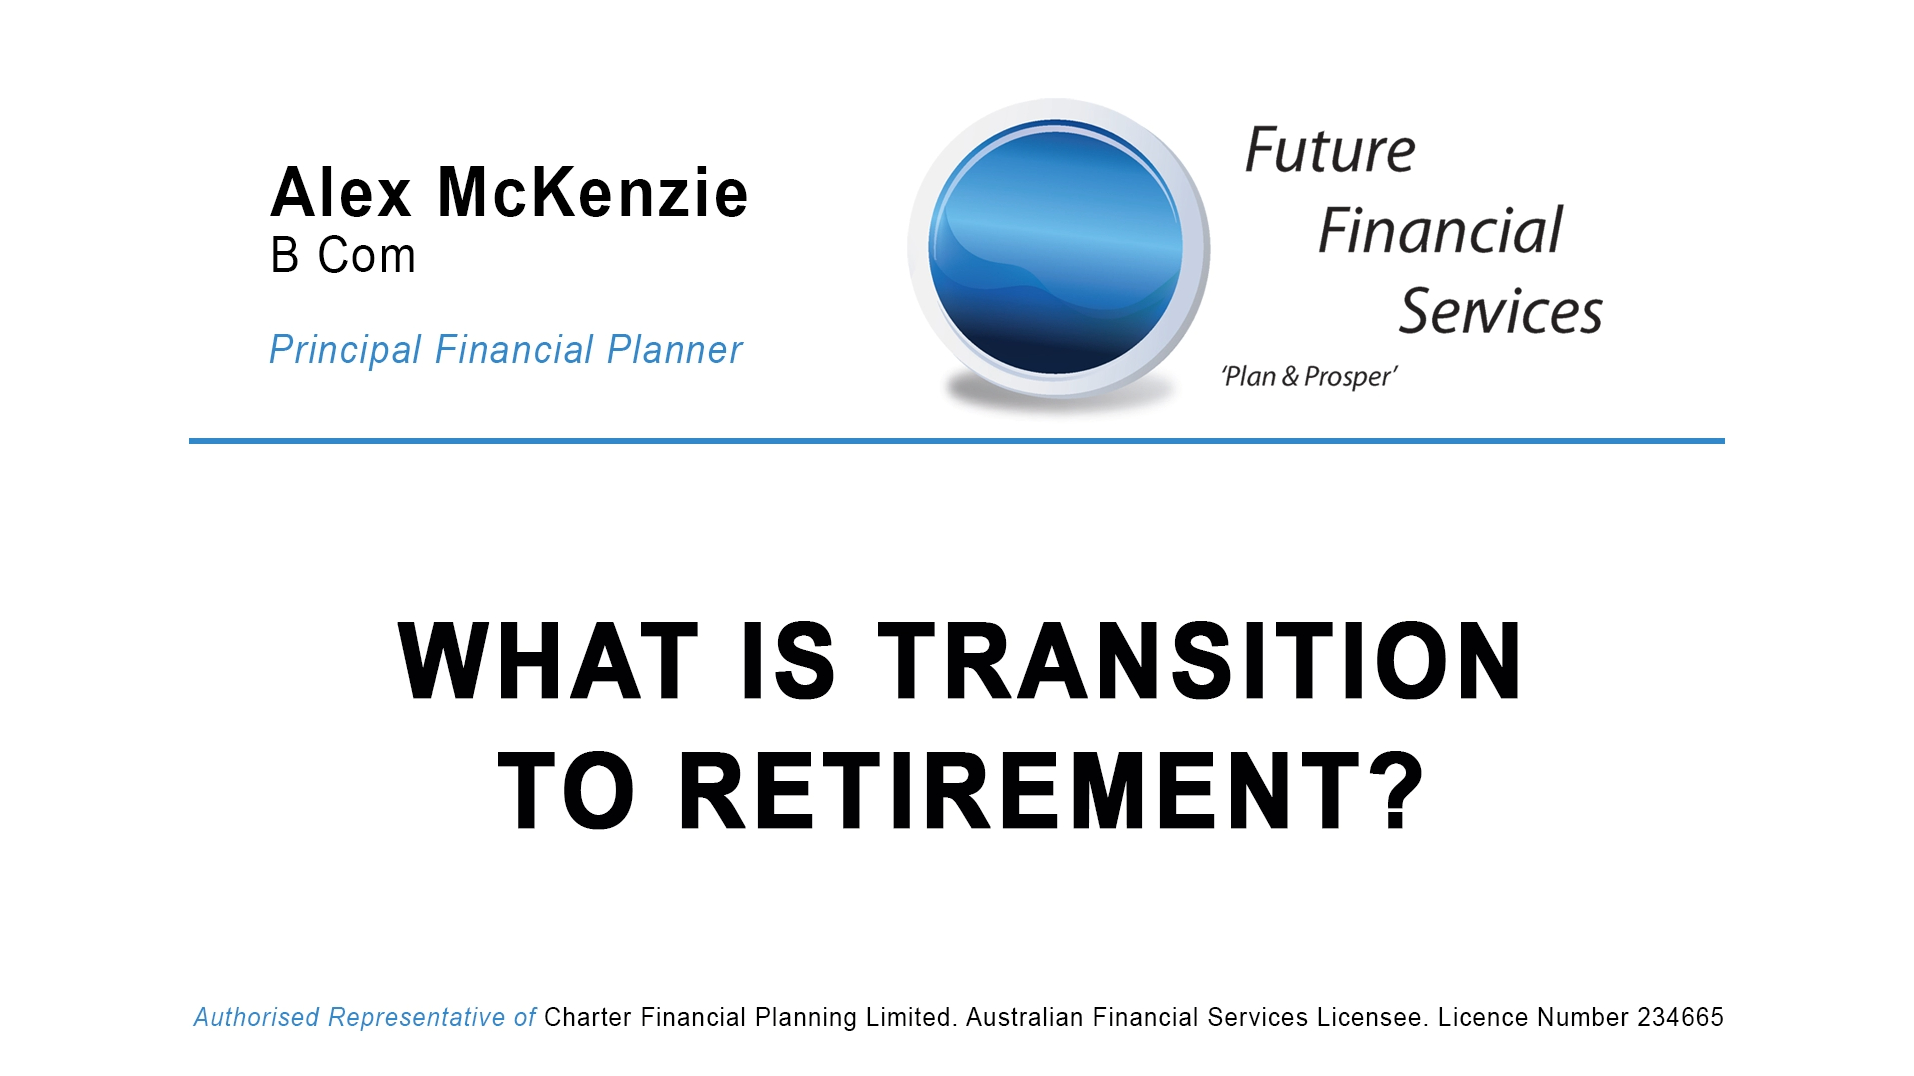 What is transition to retirement